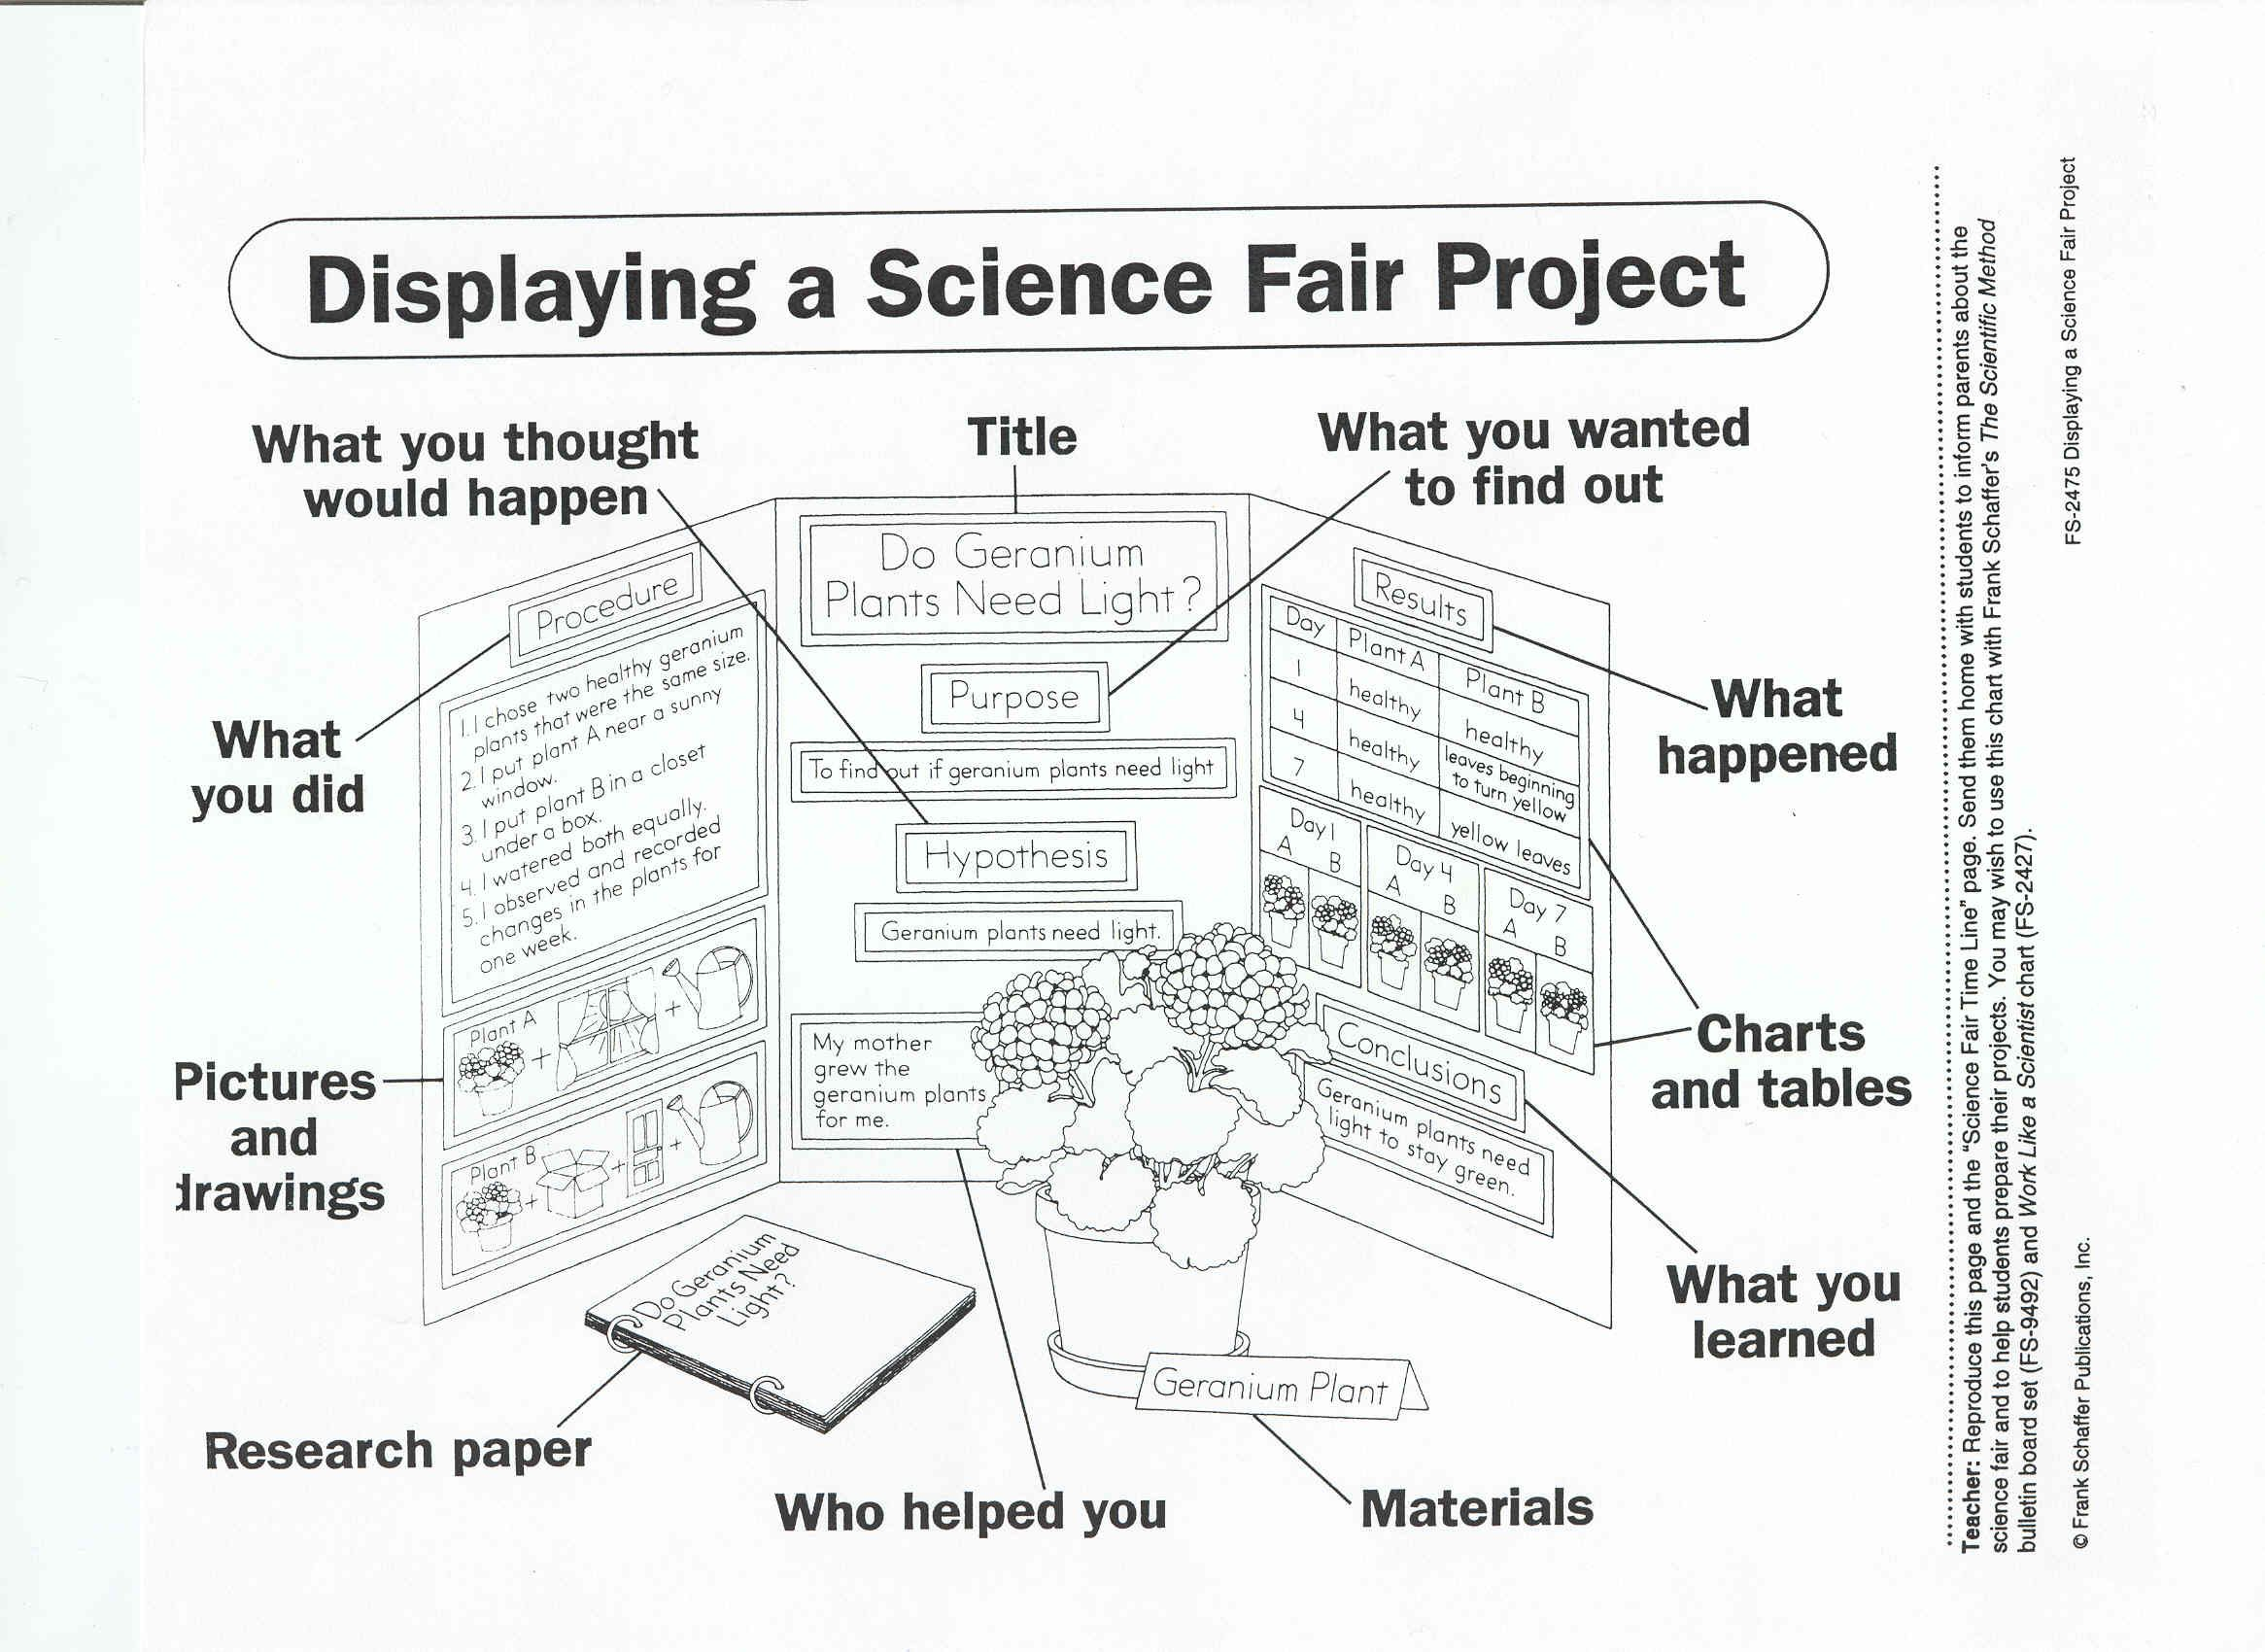 Science Fair Project Research Paper Layout Term Paper Academic